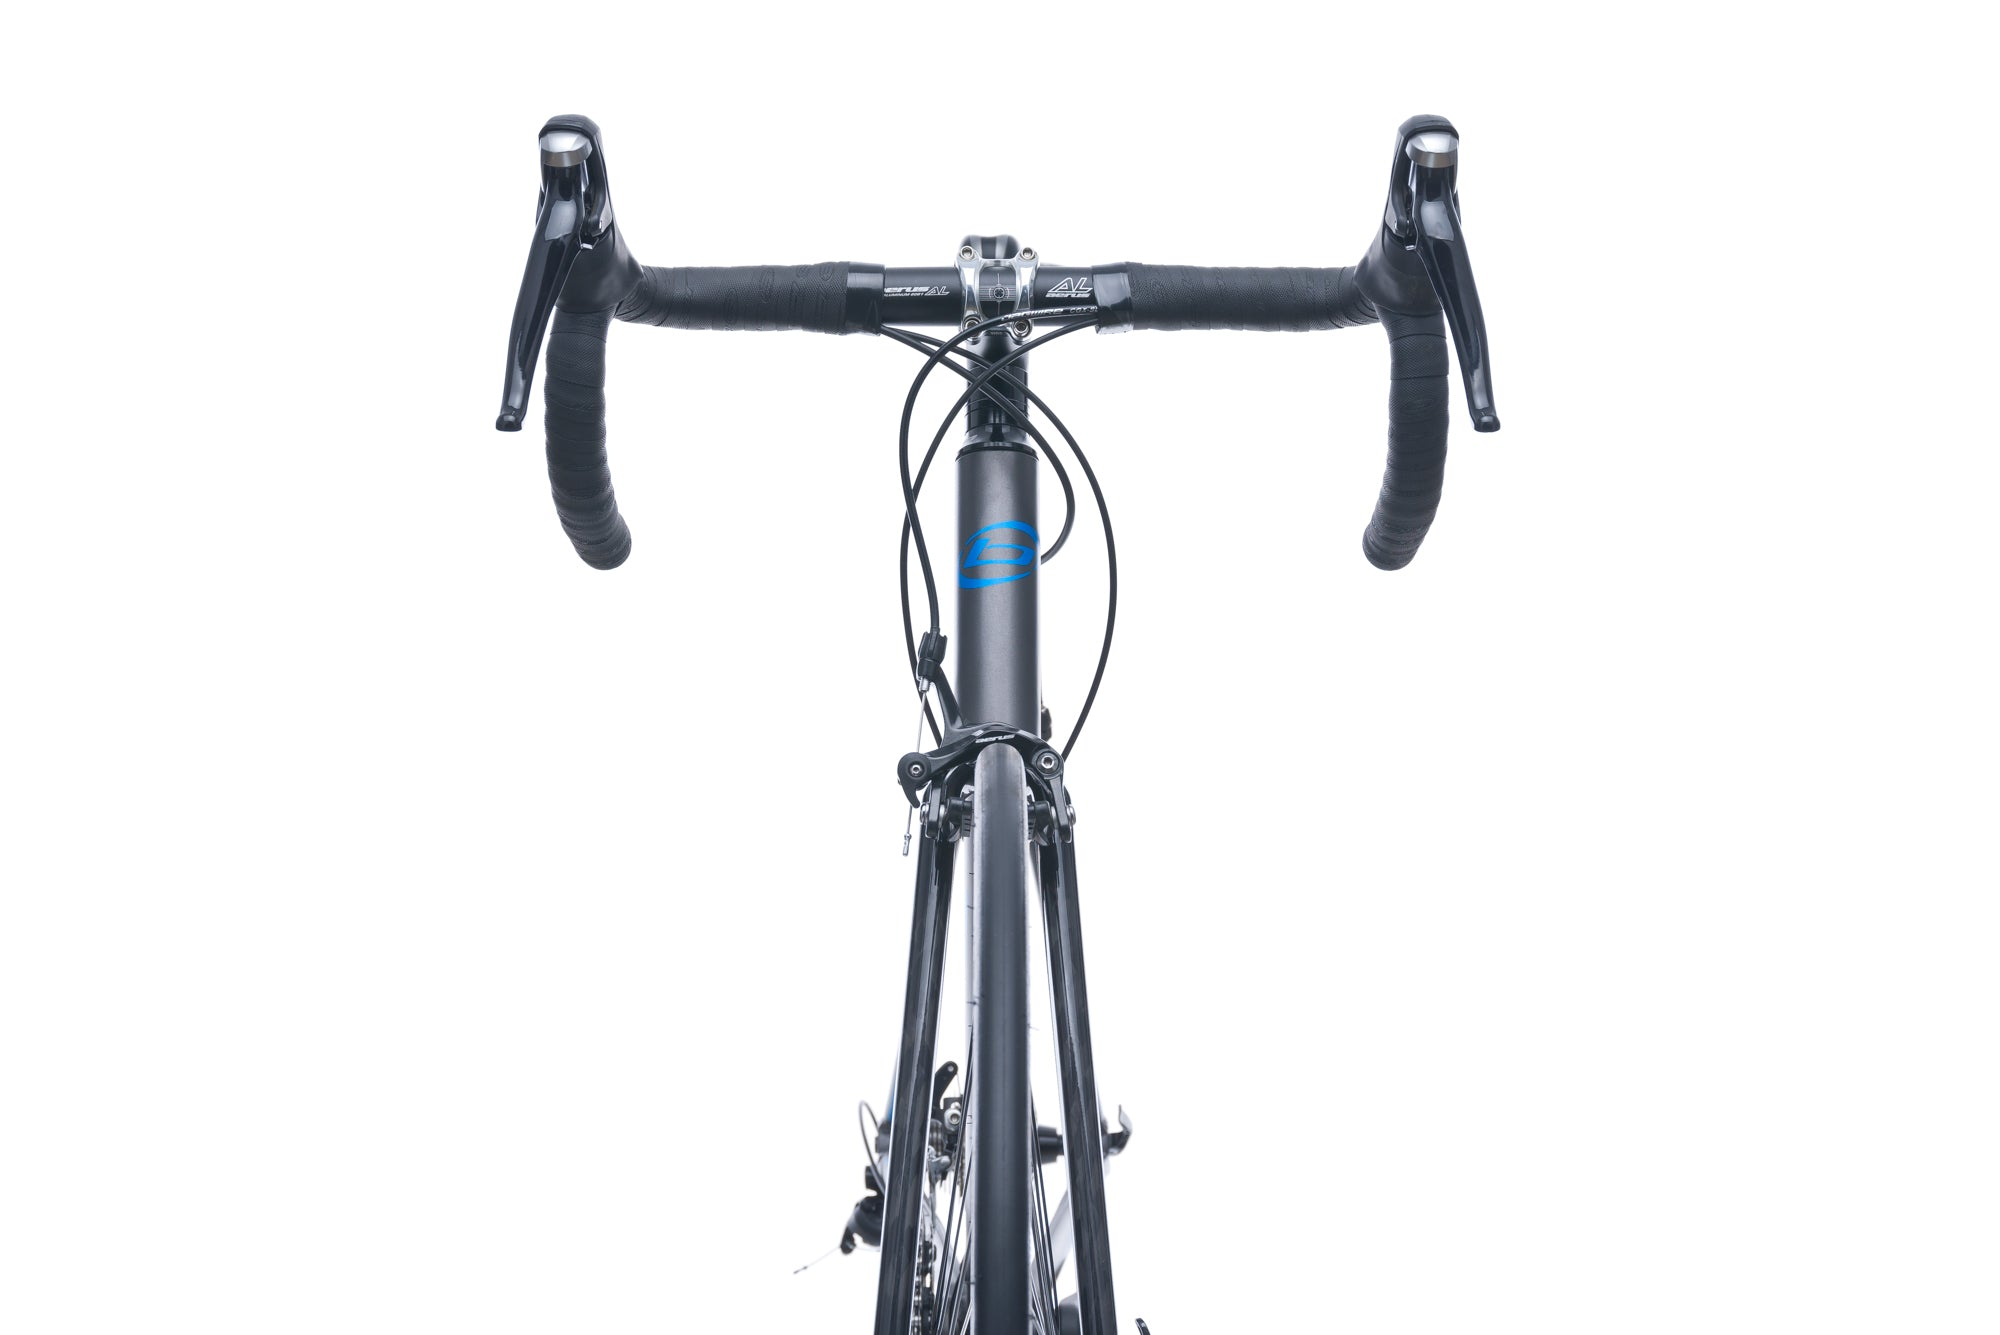 Blue AC1 AL 56cm Bike - 2017 front wheel